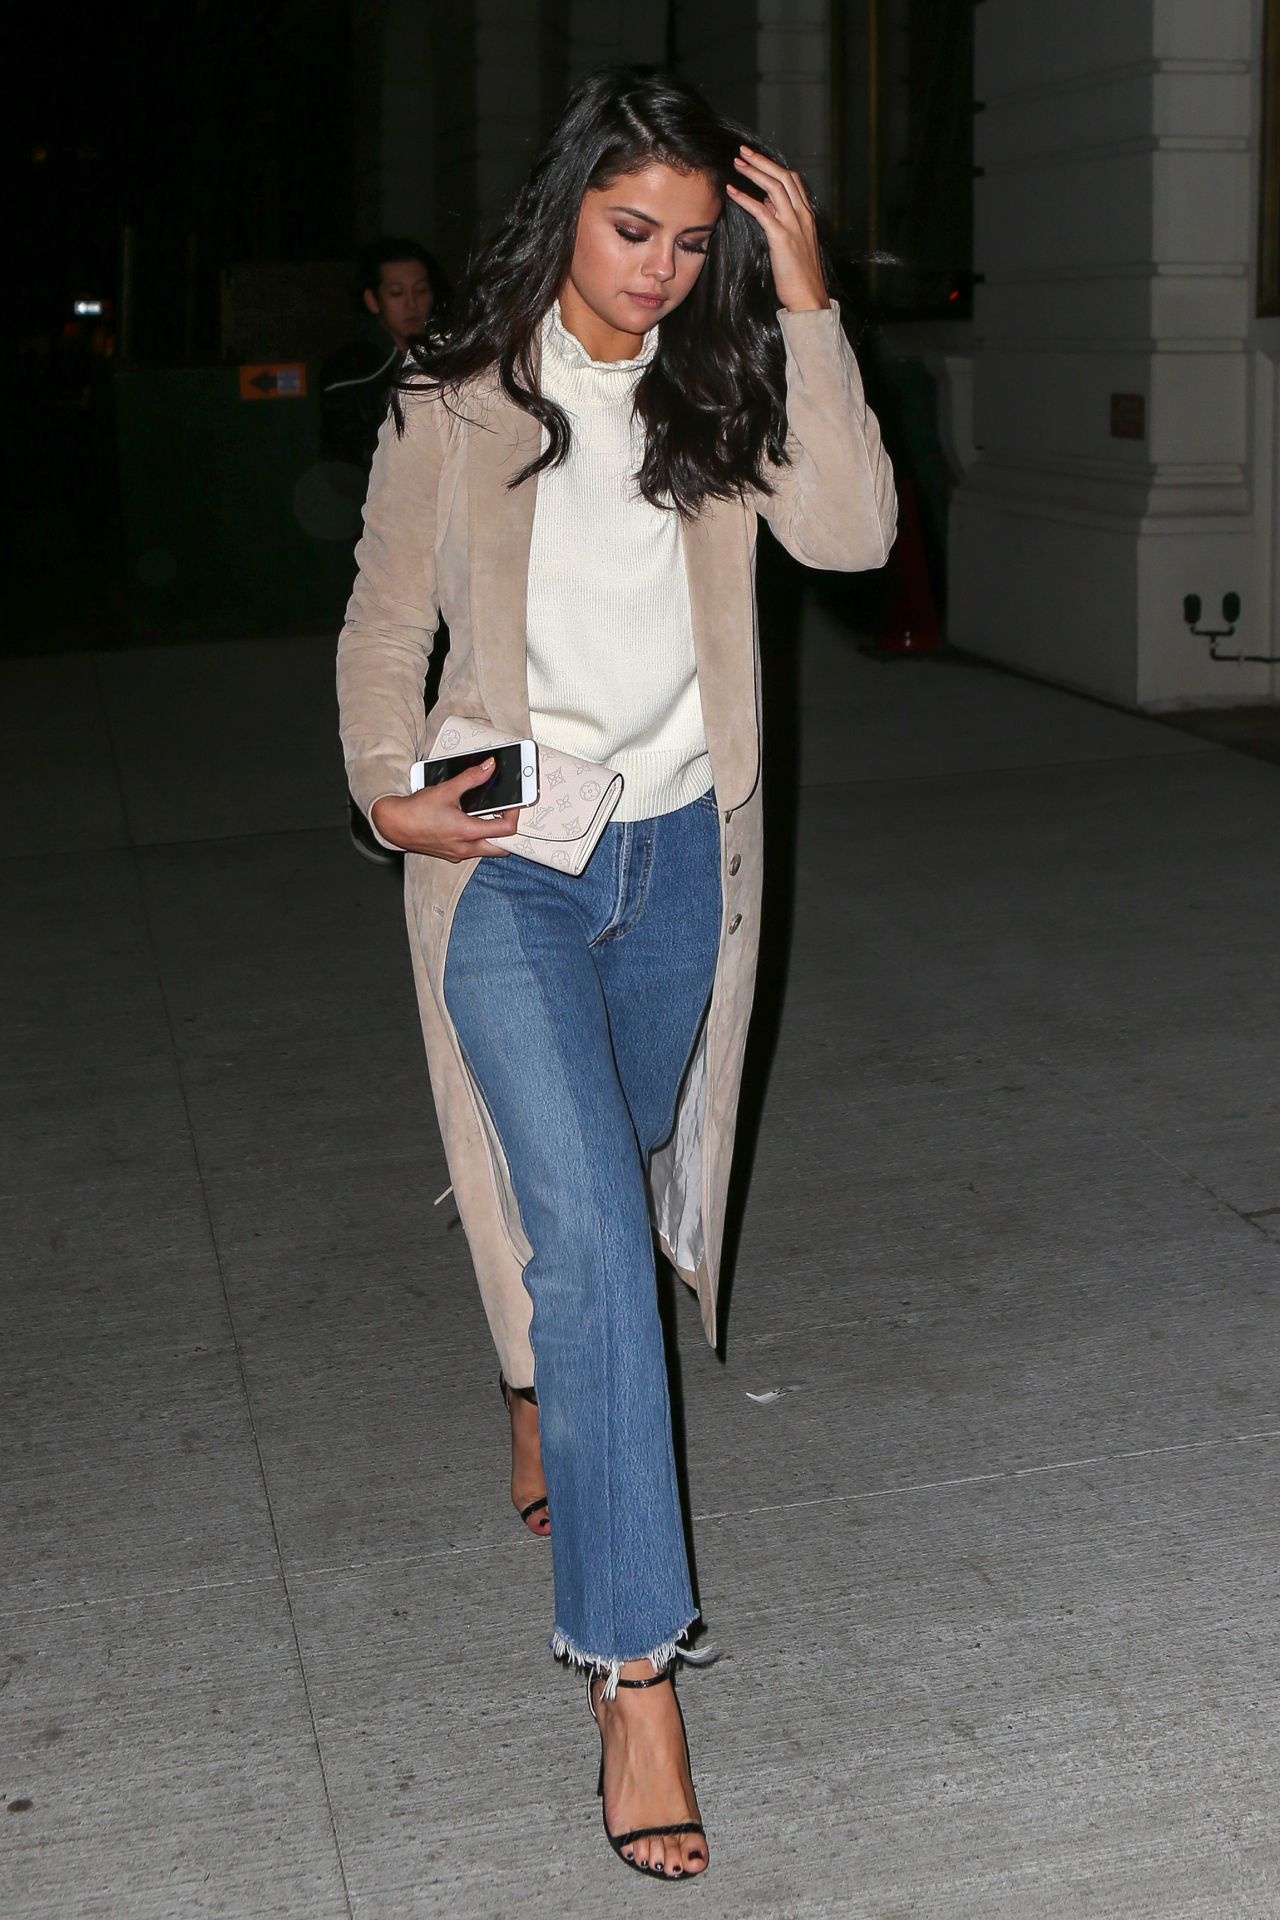 selena gomez night out style at nobu restaurant in new